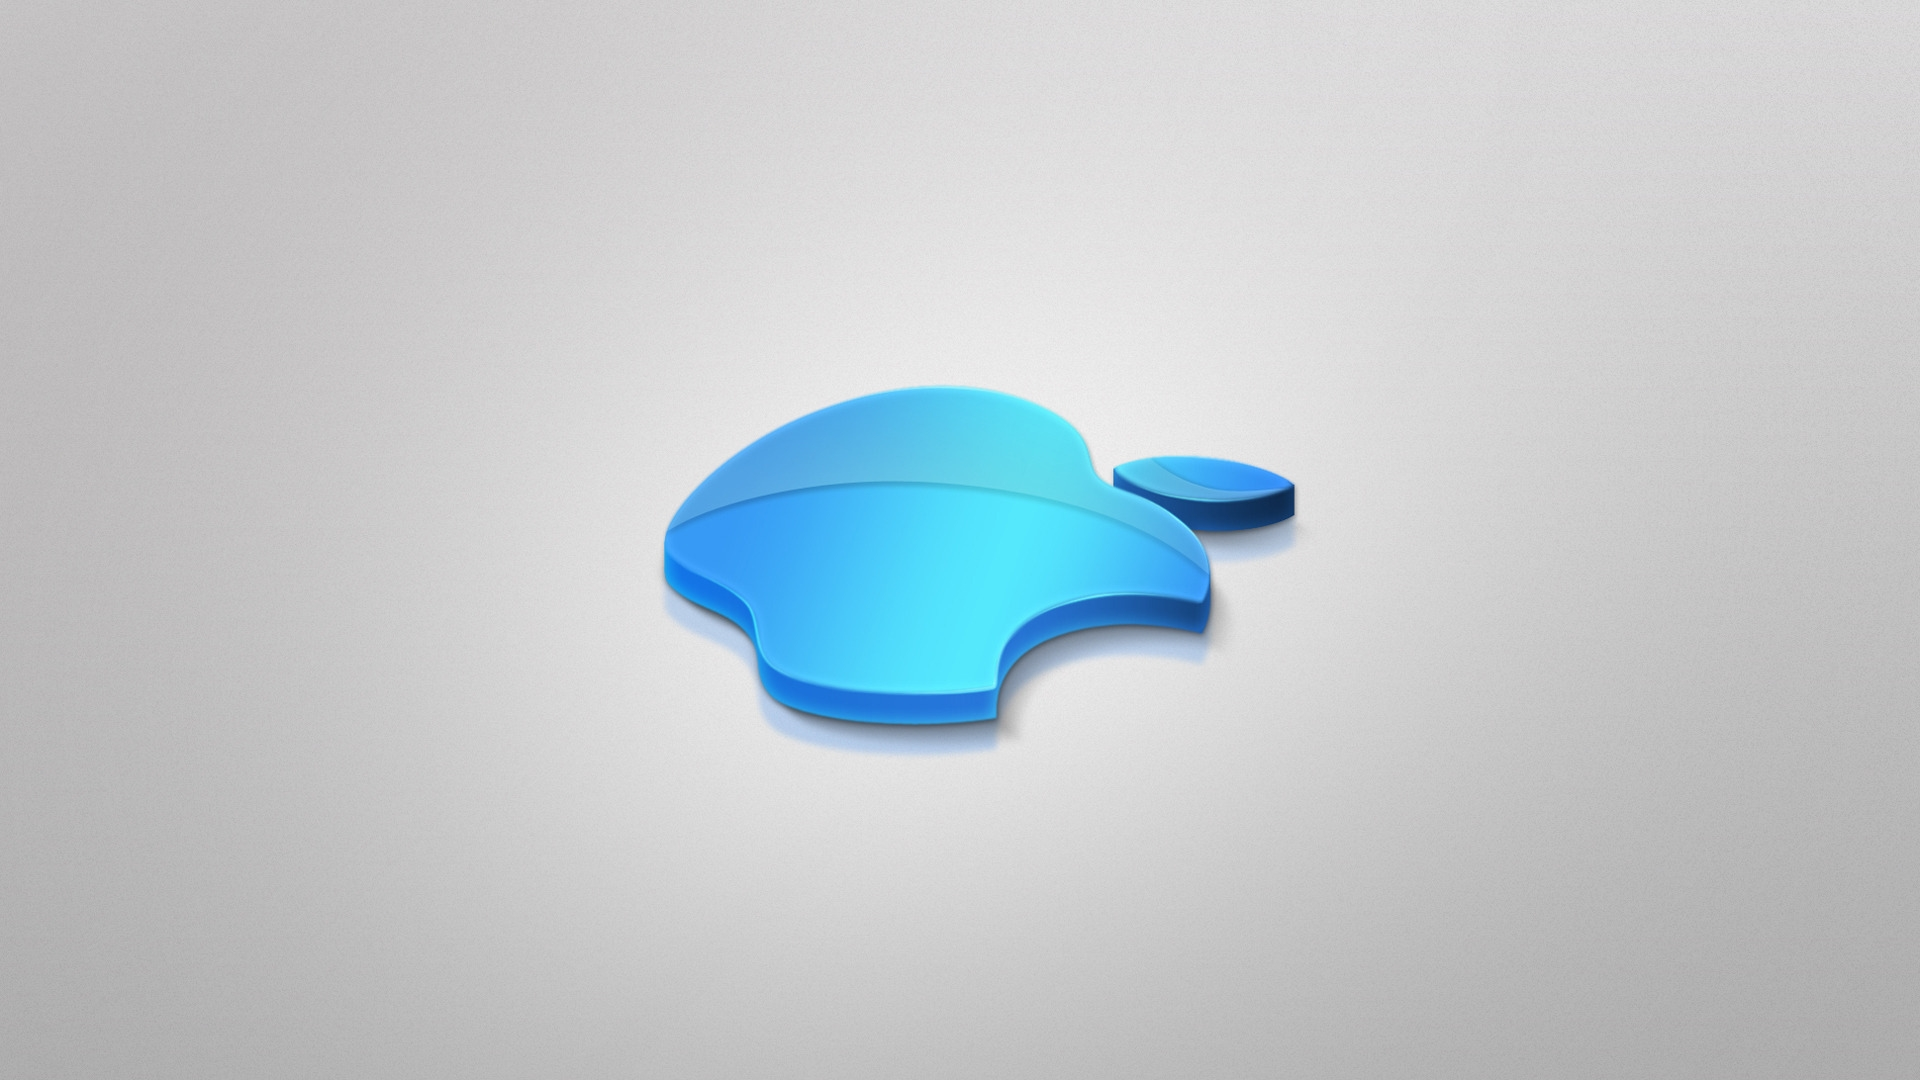 apple 3d hd images | wallpaper.wiki